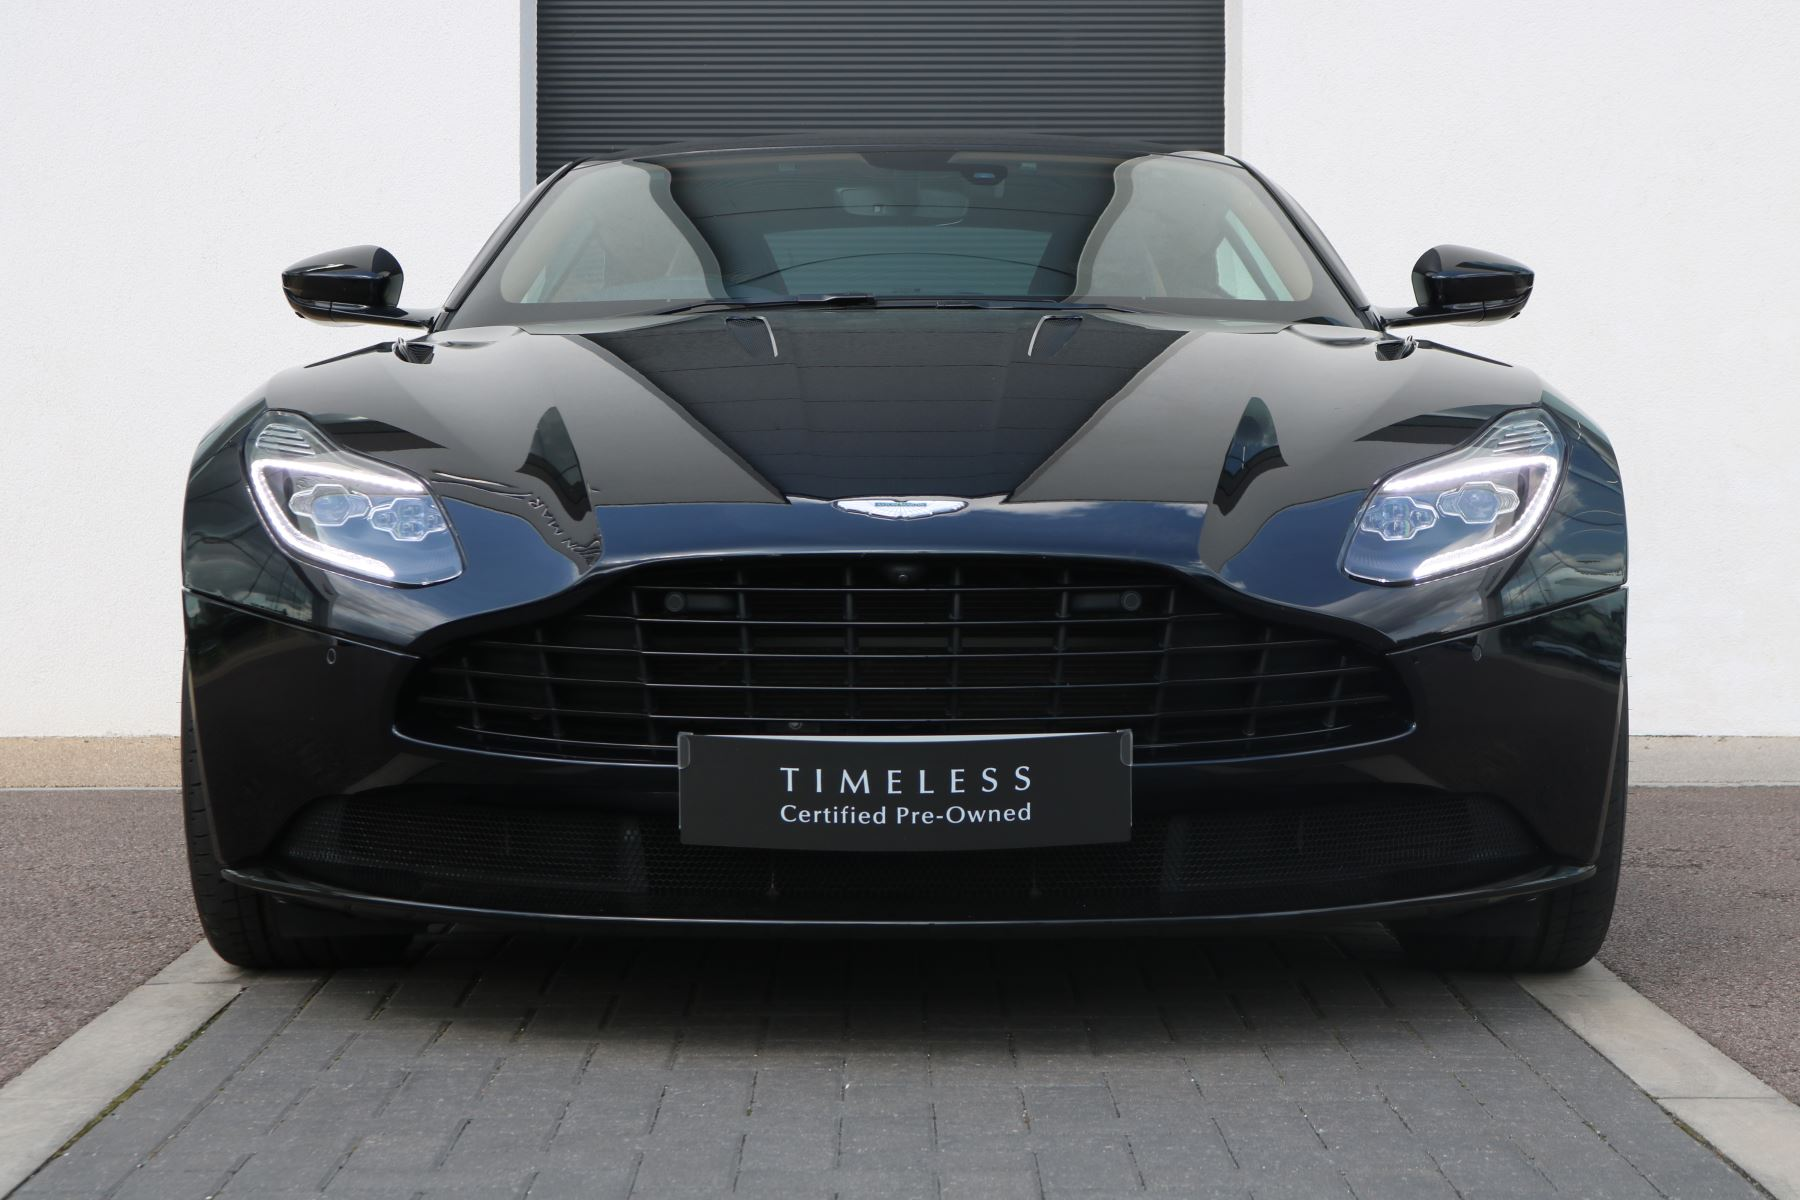 Aston Martin DB11 V12 Touchtronic Coupe Low Mileage Two Tone Leather  5.2 Automatic 2 door